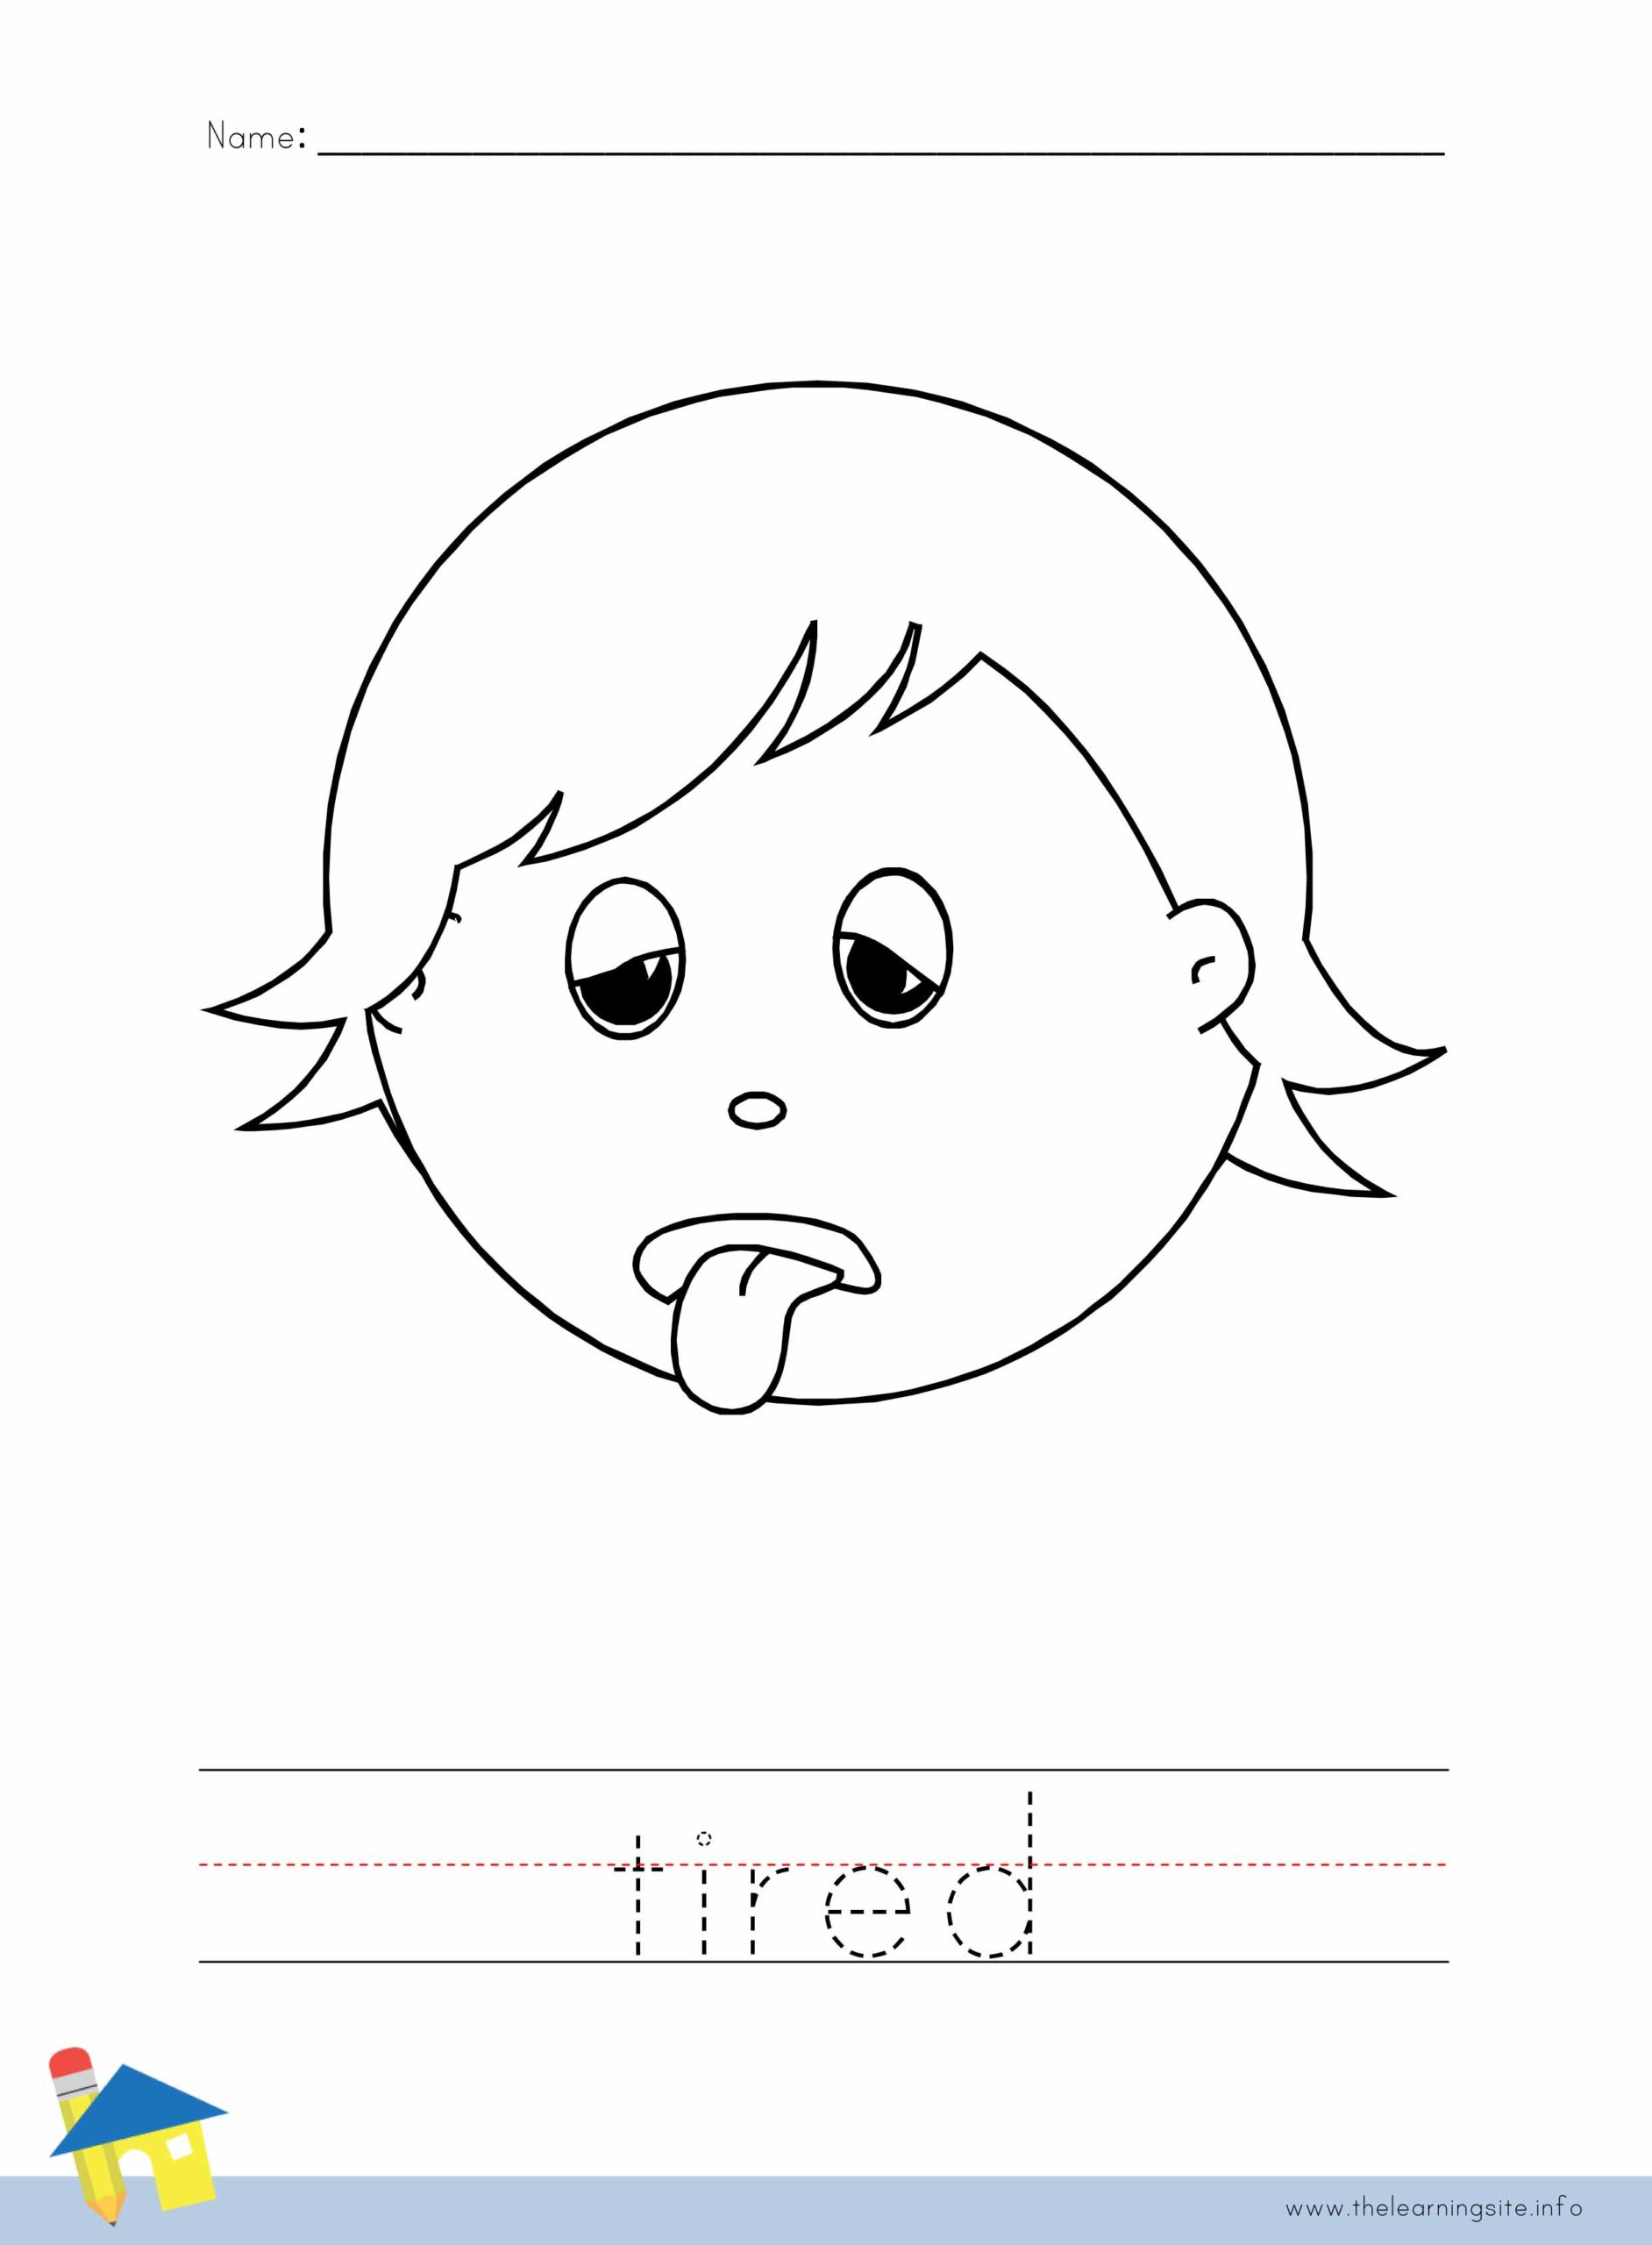 Tired Coloring Worksheet The Learning Site